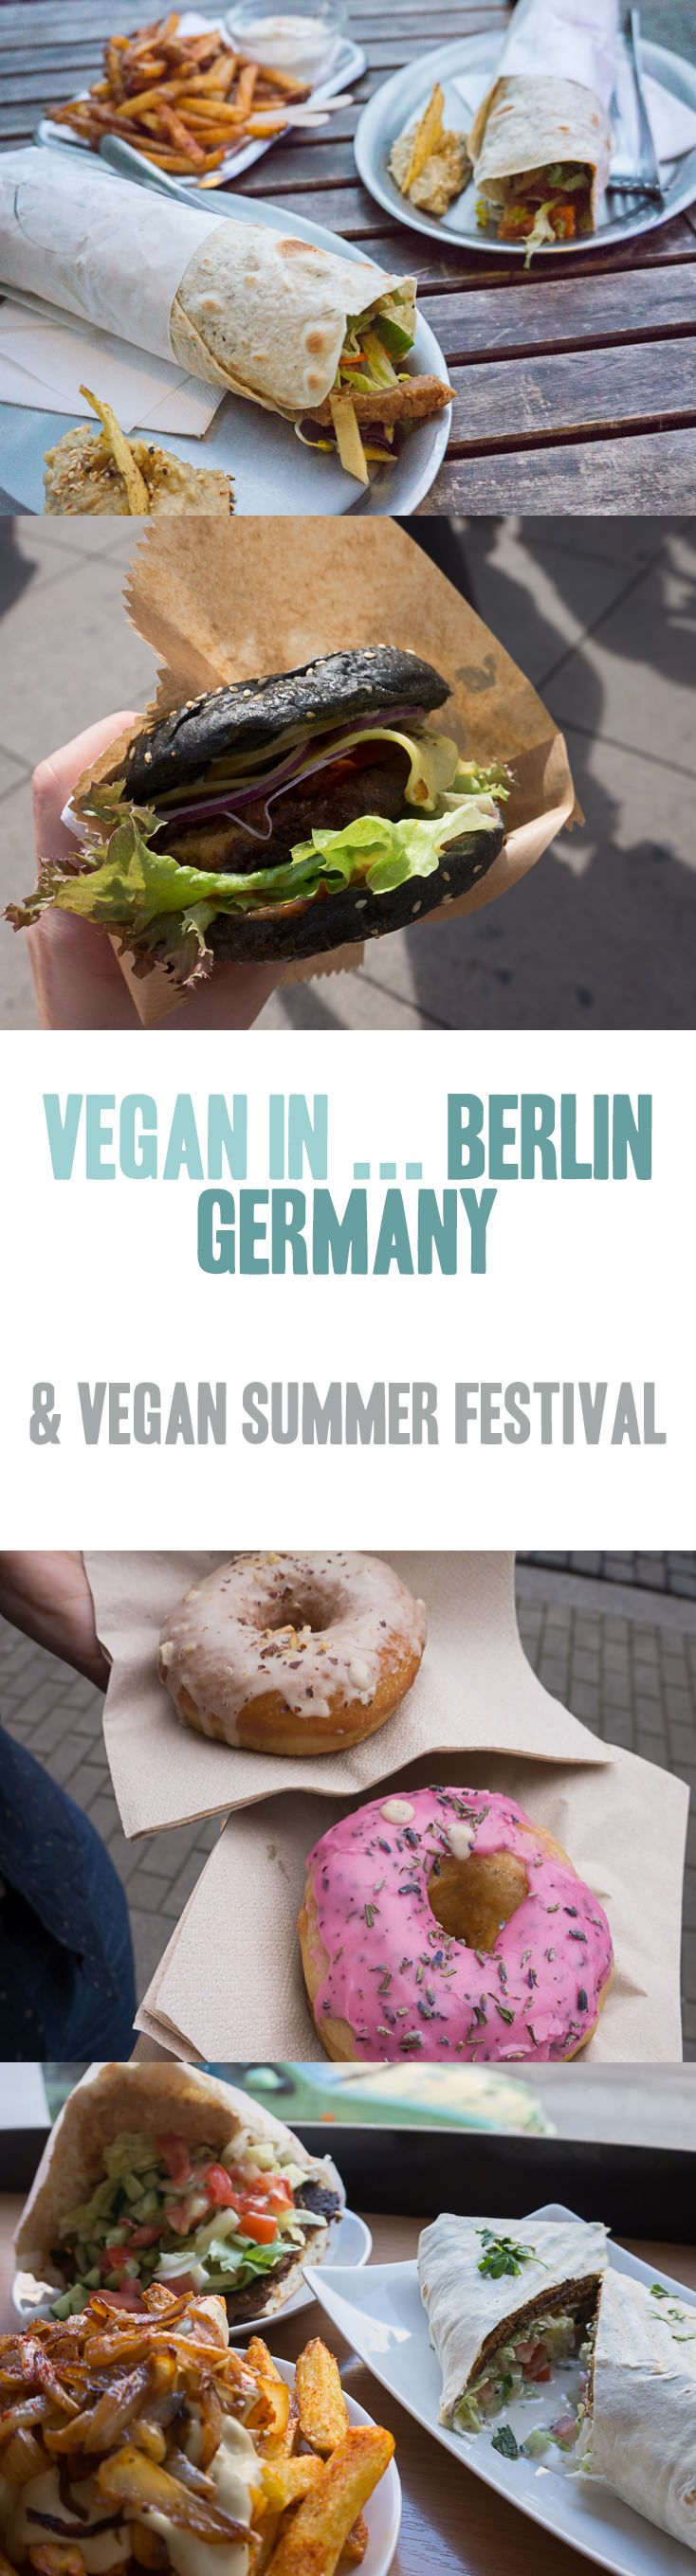 Vegan in Berlin - Germany | ElephantasticVegan.com